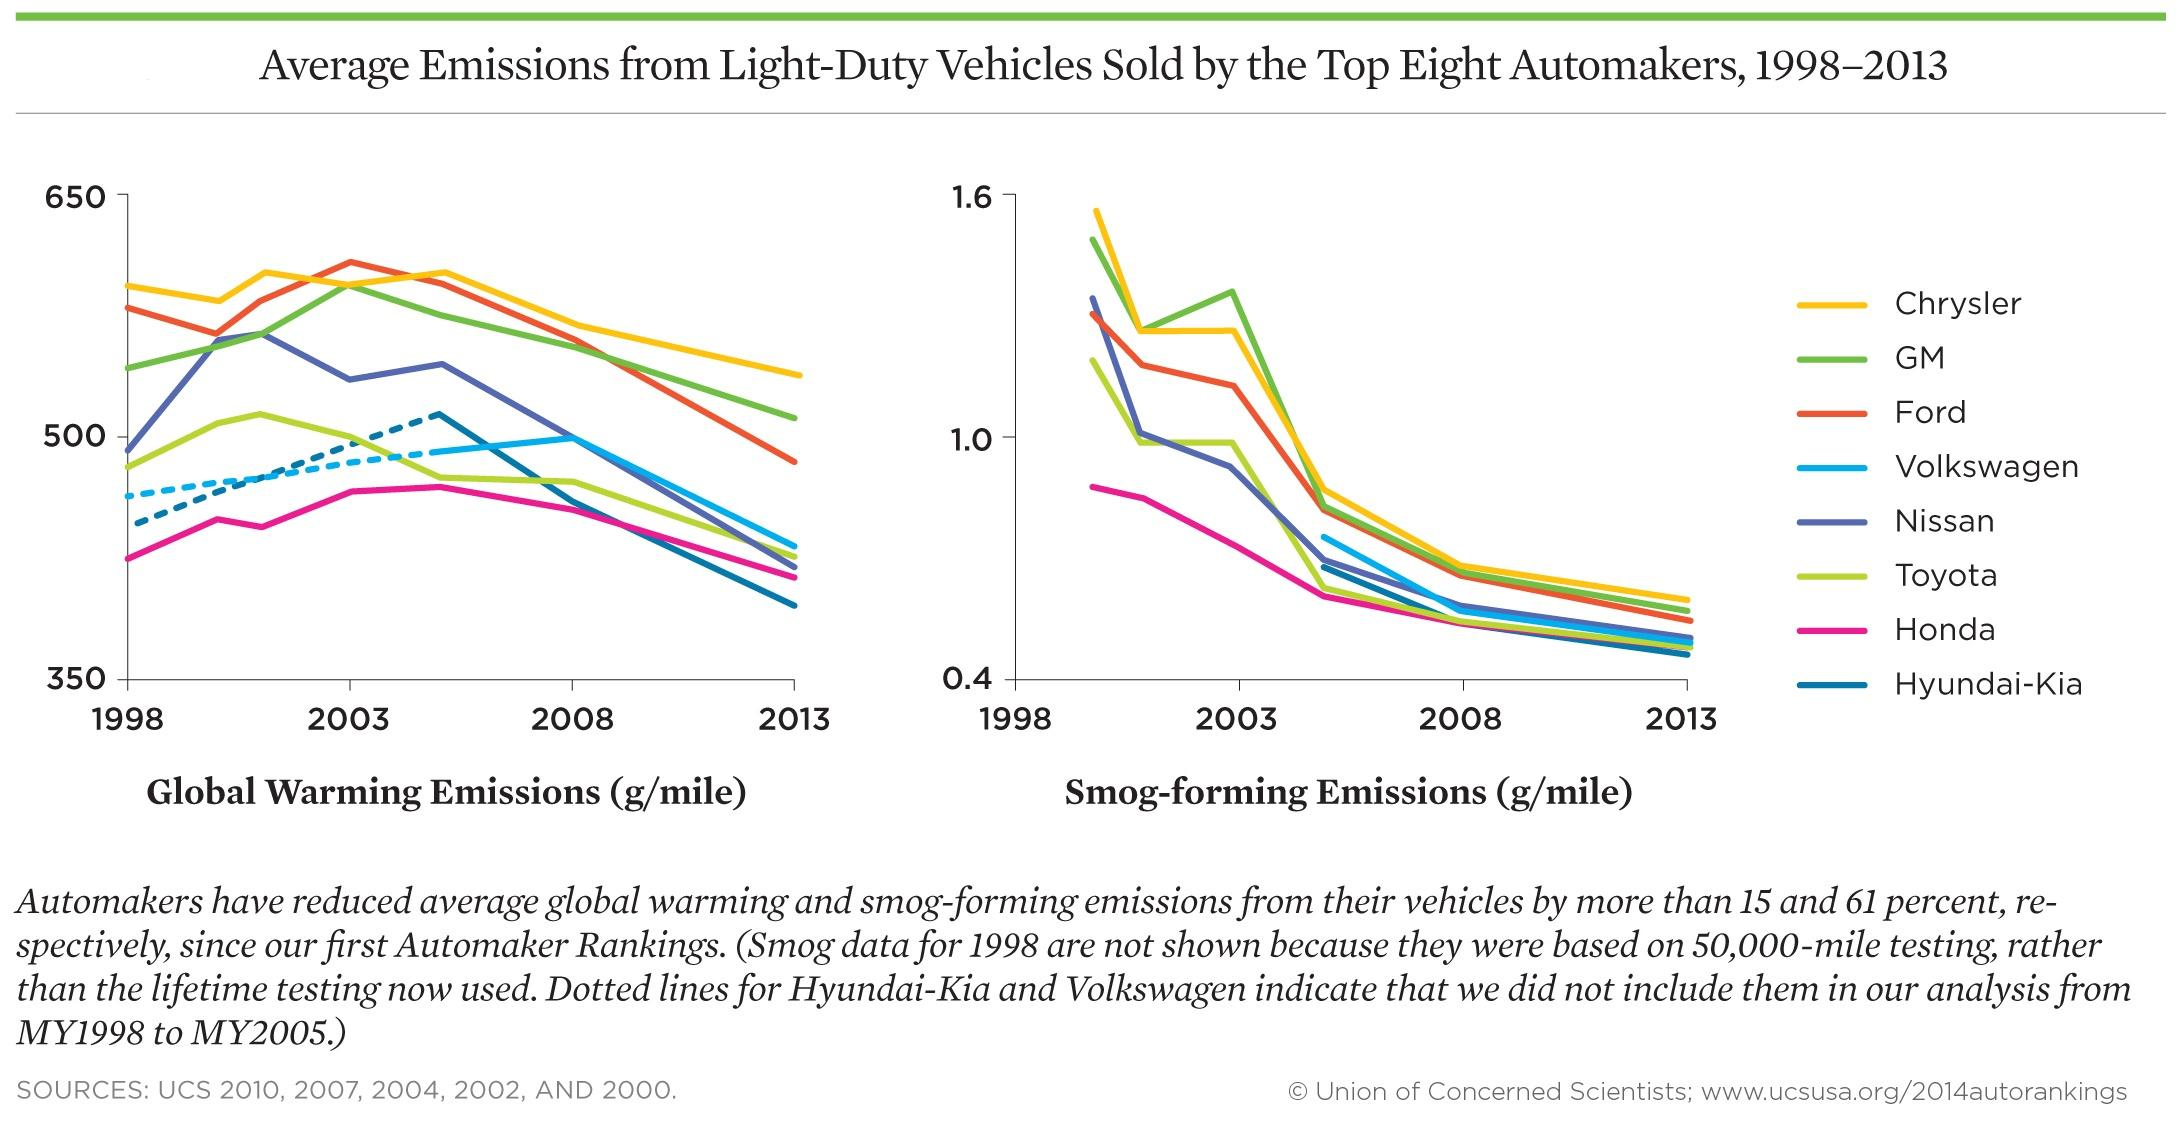 https://www.murrayhyundai.com/wp-content/uploads/sites/16/2019/03/average-emissions-from-light-duty-vehicles-1998-2013-via-the-union-of-concerned-scientists_100468249_h.jpg